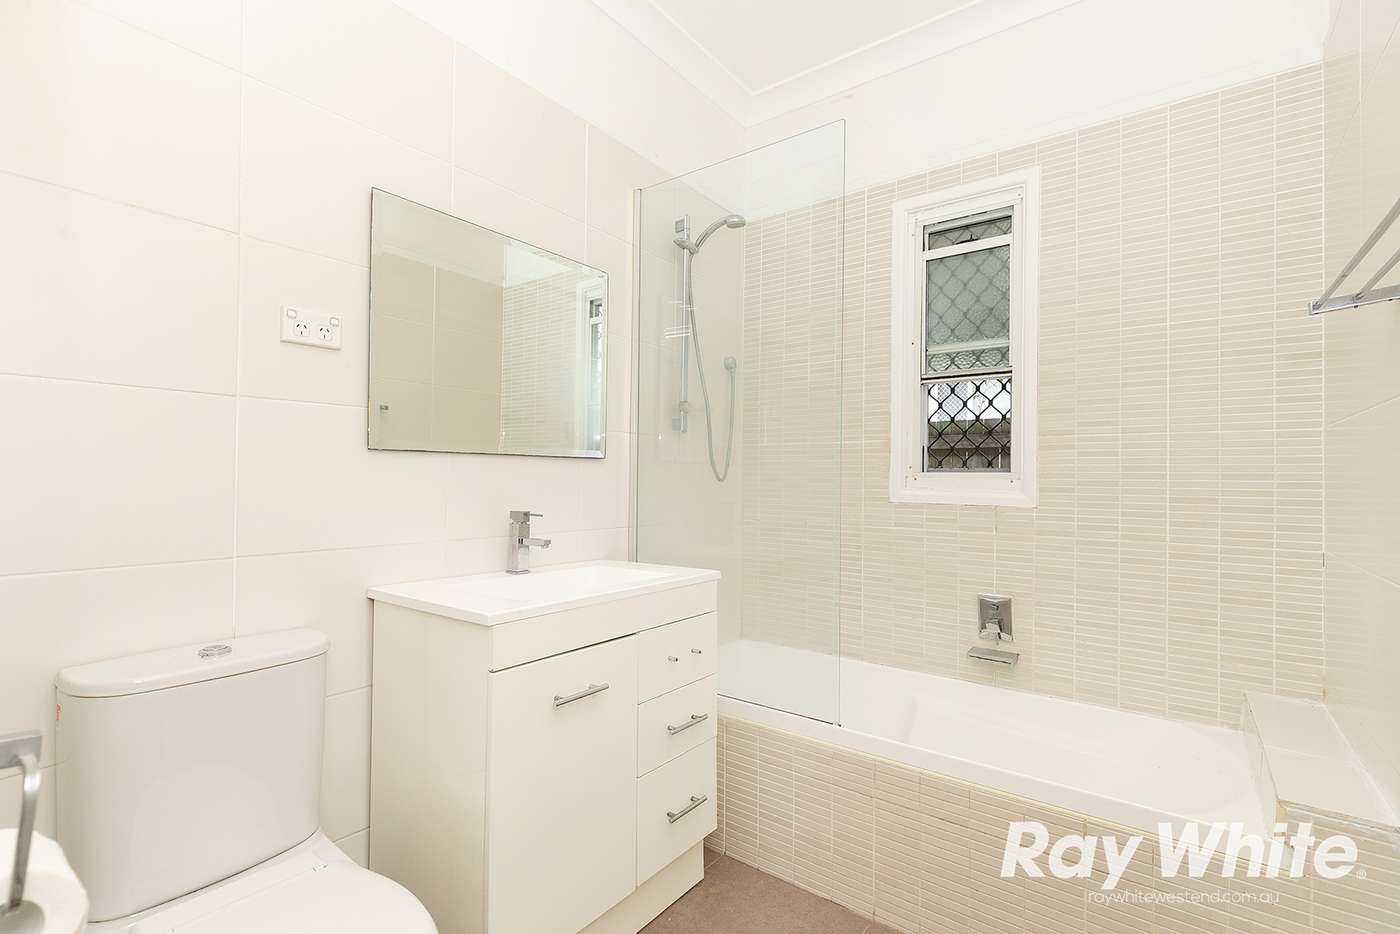 Sixth view of Homely house listing, 20 Tolmie Street, Zillmere QLD 4034